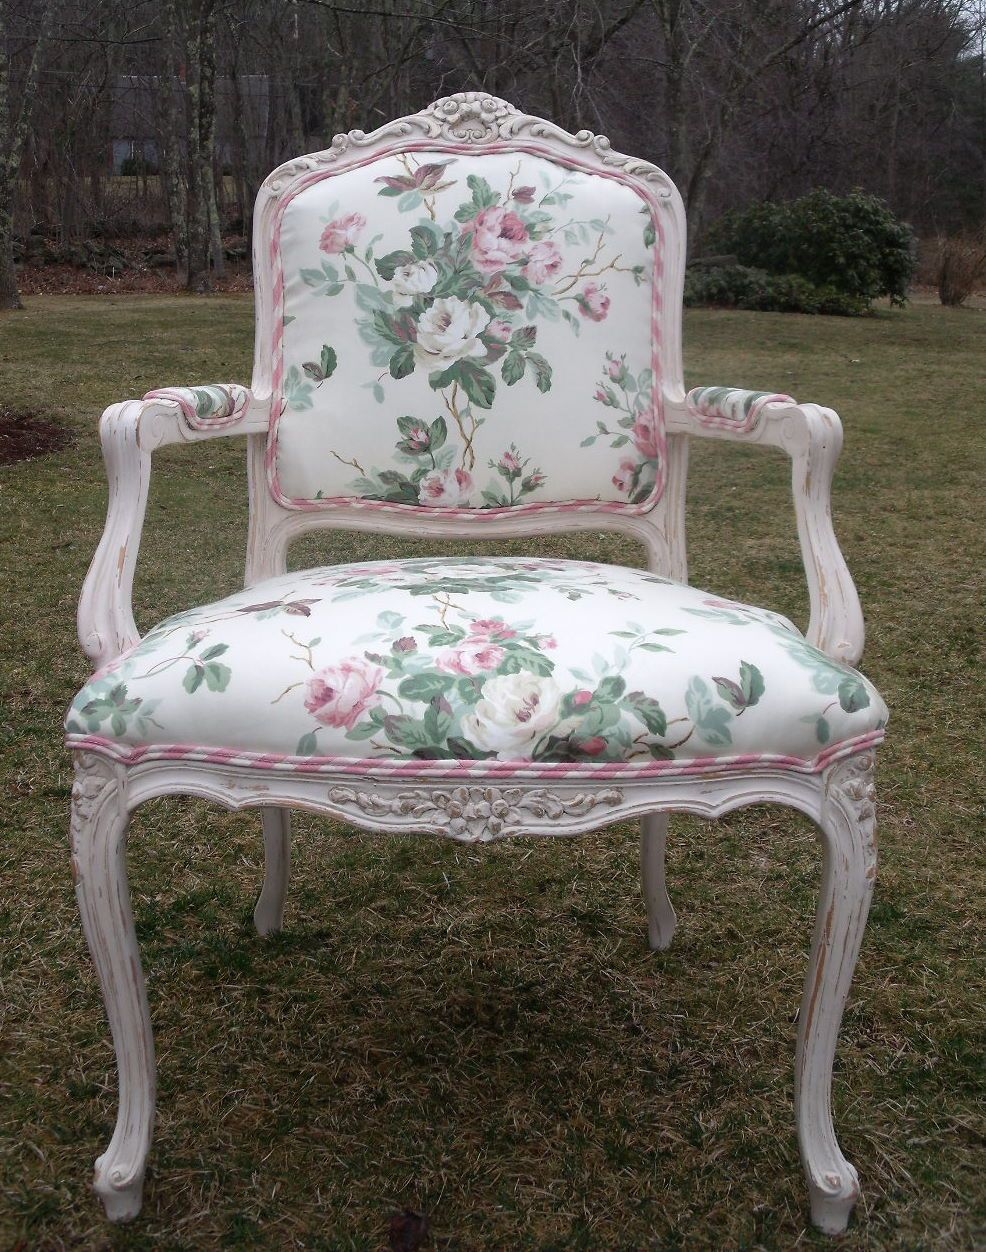 Chair shabby chic painted rocking chairs - Rocking Chairs Shabby Chic Bergere Chair In Pink Chintz And Chalk Paint